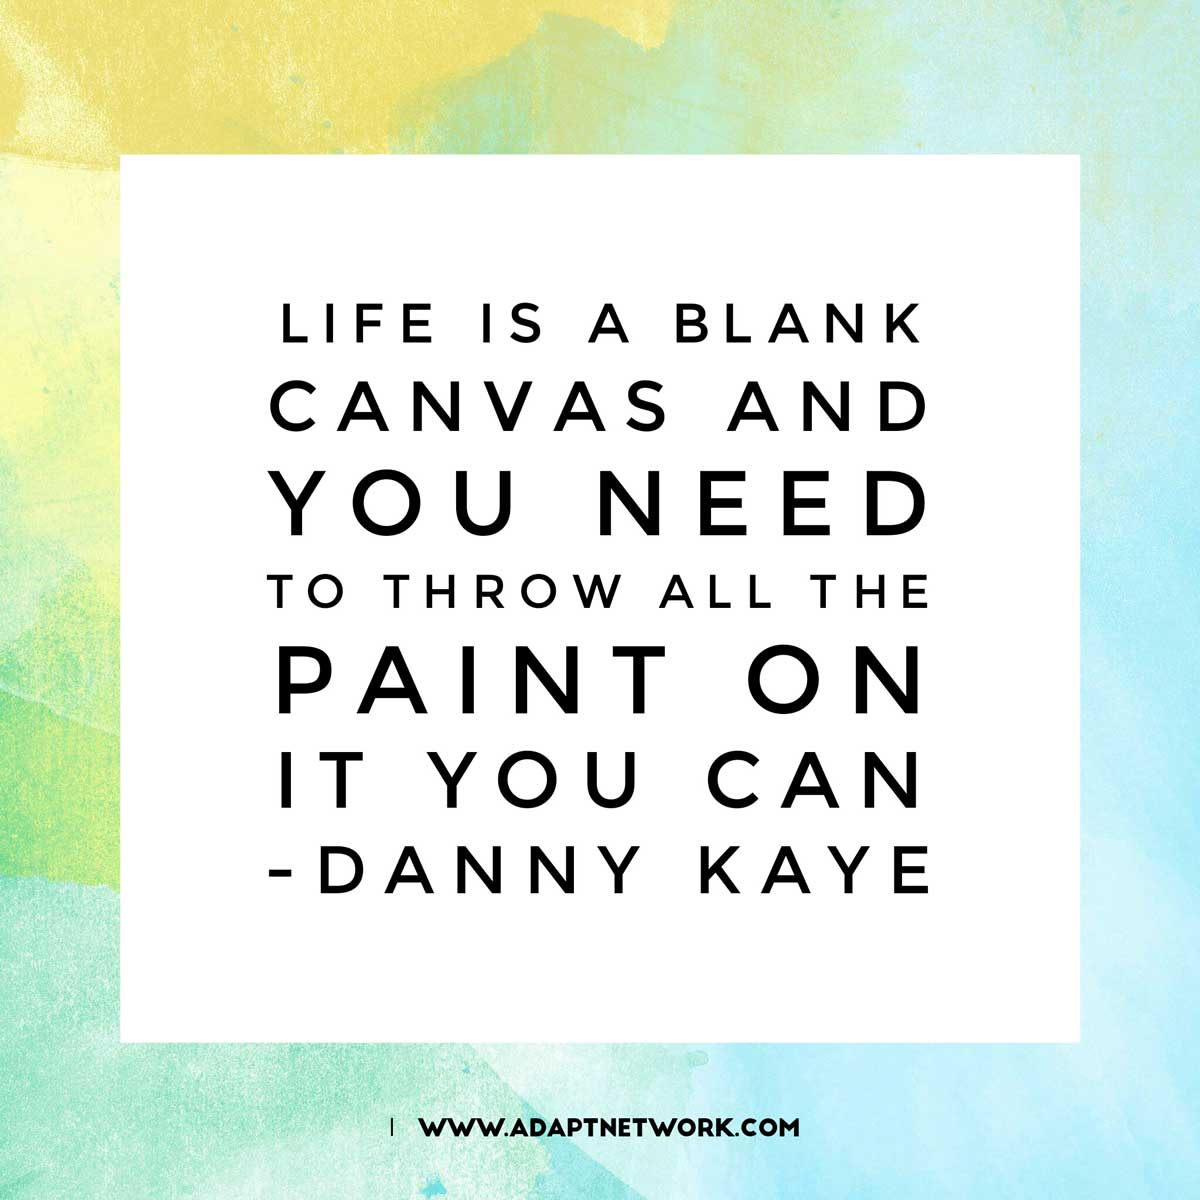 Life Canvas Quote Life Is A Blank Canvas And You Need To Throw All The Paint On It